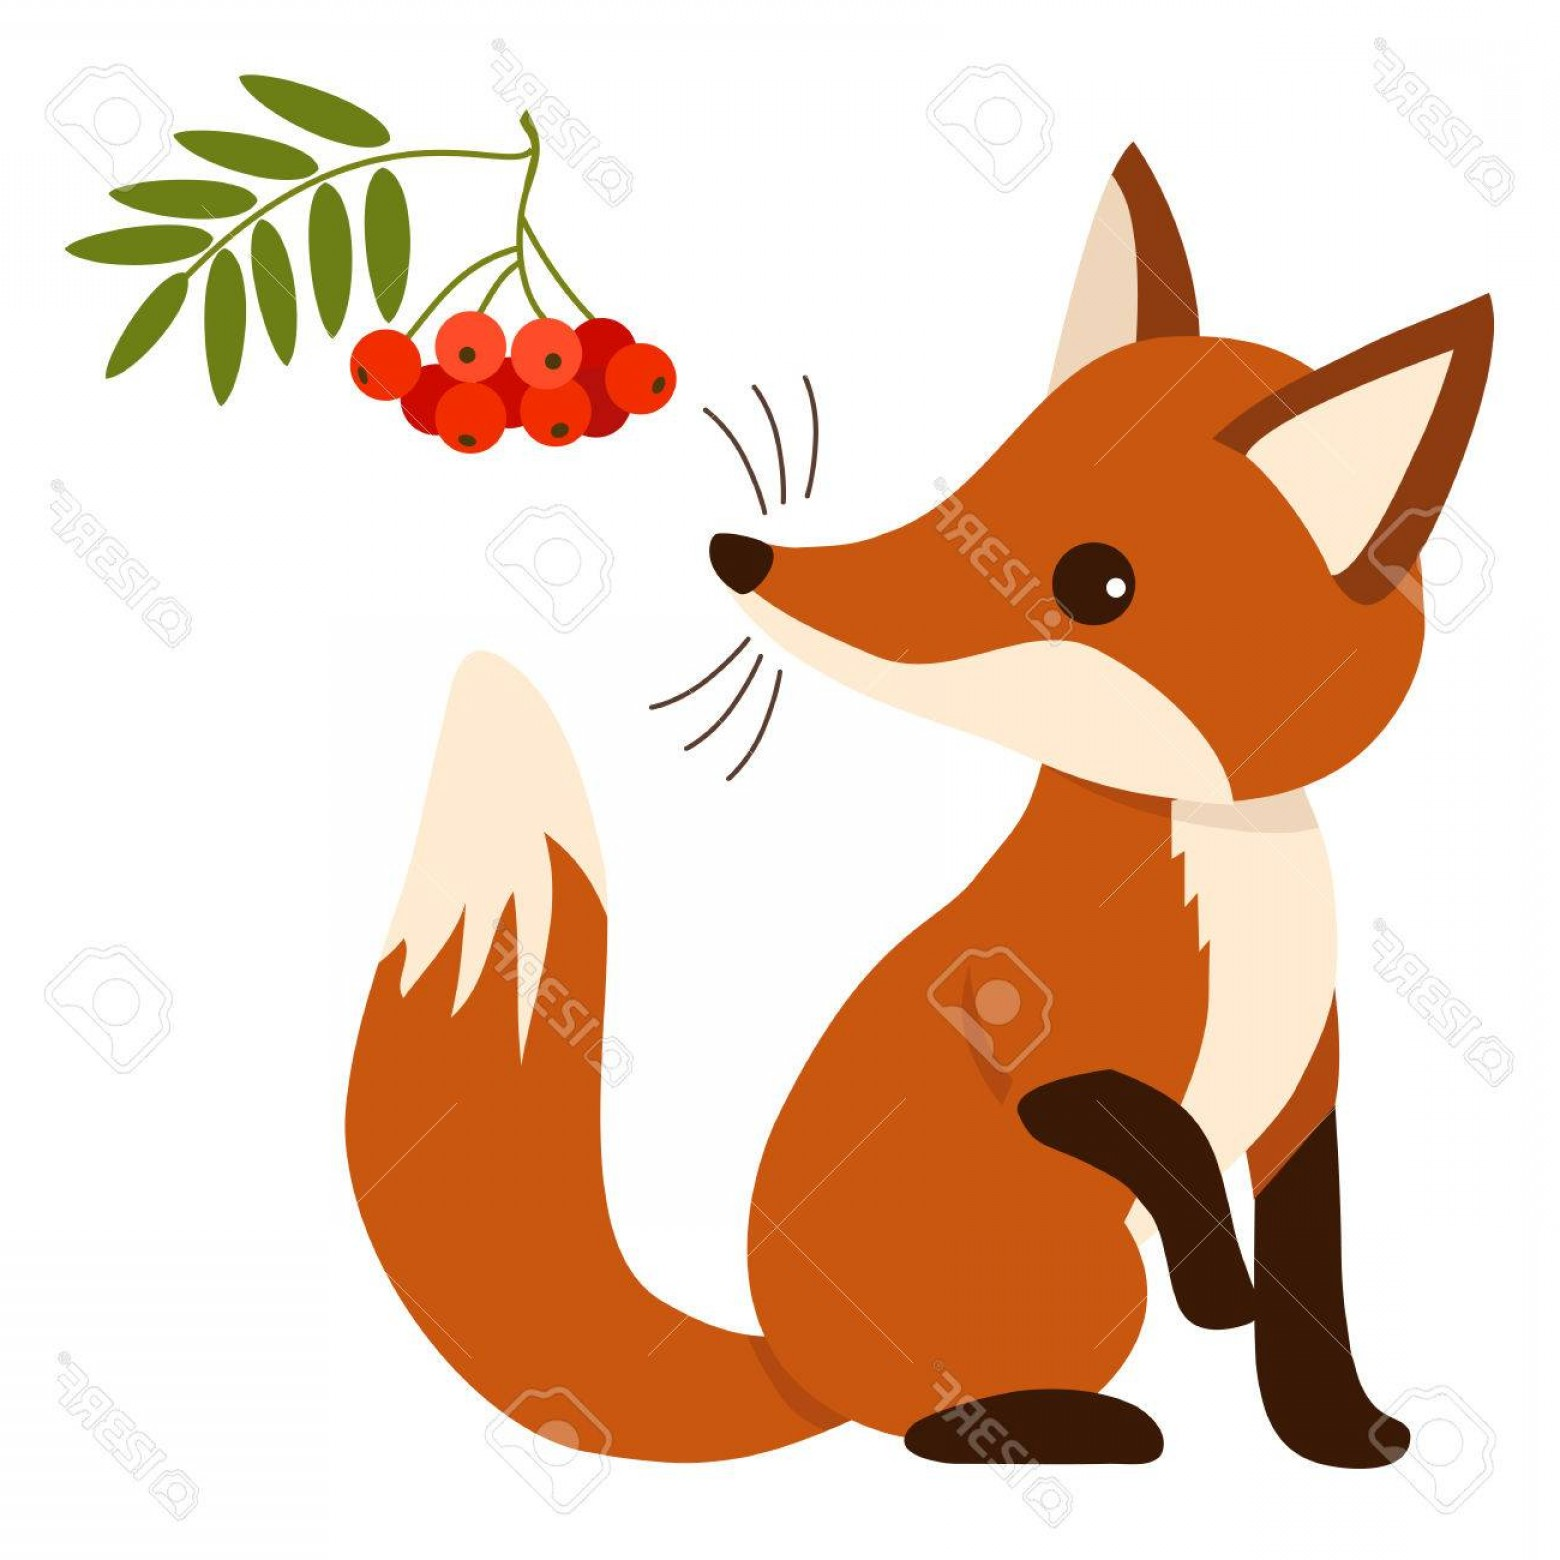 Sitting Fox Logo Vector: Photostock Vector Flat Vector Illustration Of A Cute Sitting Fox Cub Character With Mountain Ash Tree Branch With Leav